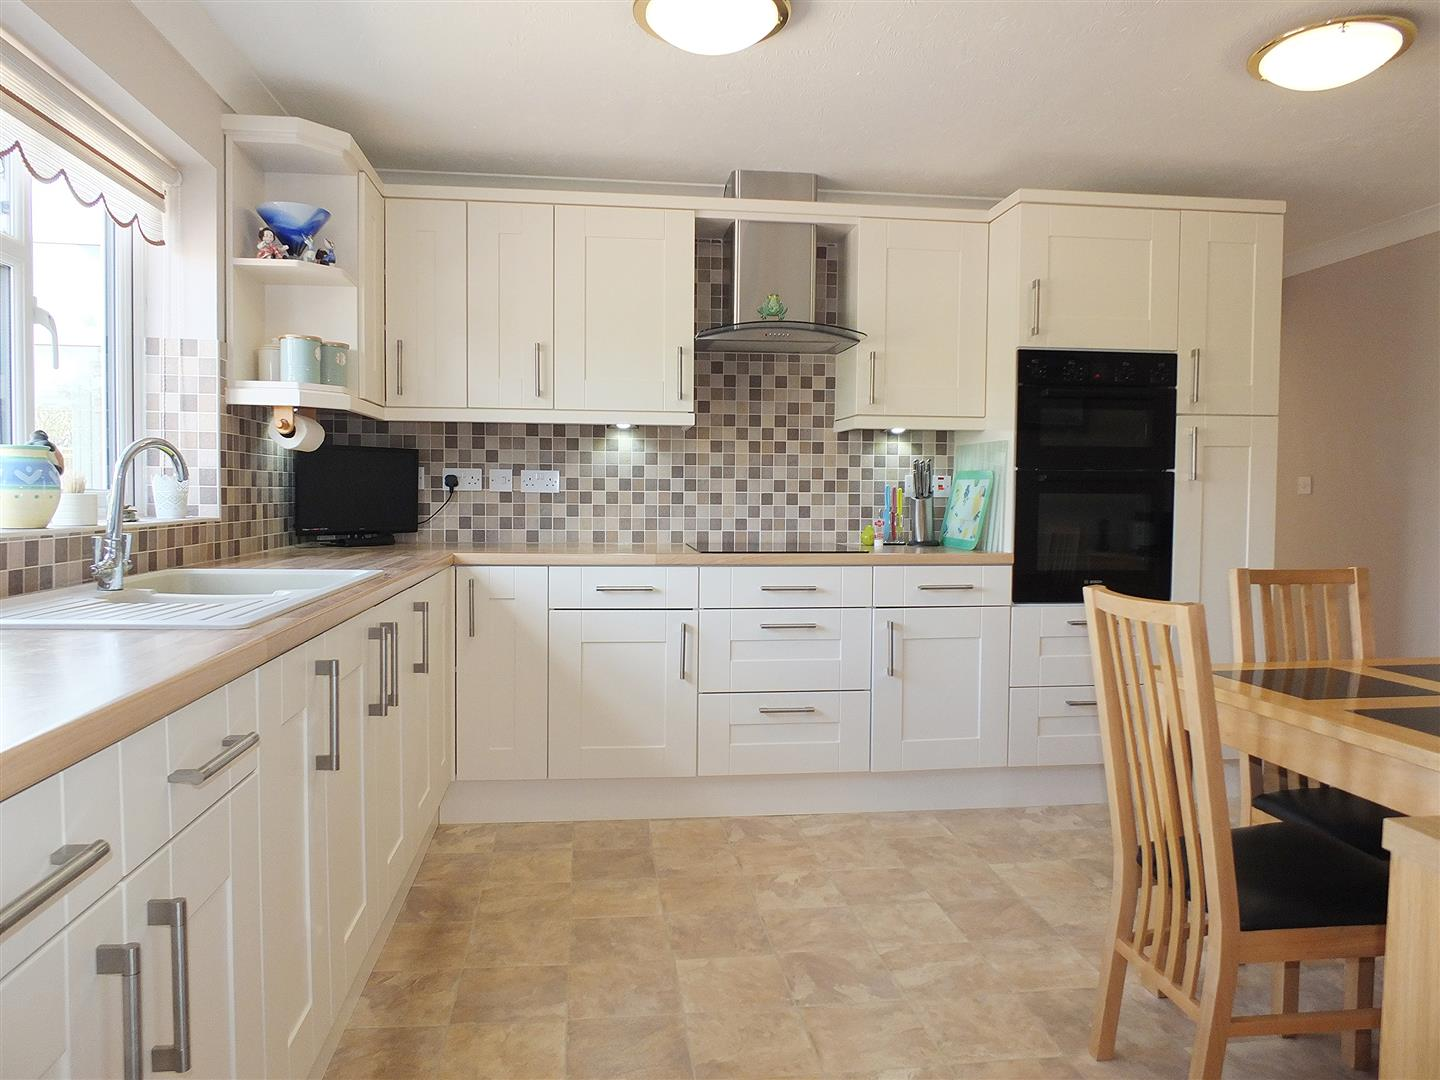 3 bed detached bungalow for sale in Long Sutton Spalding, PE12 9FT  - Property Image 3